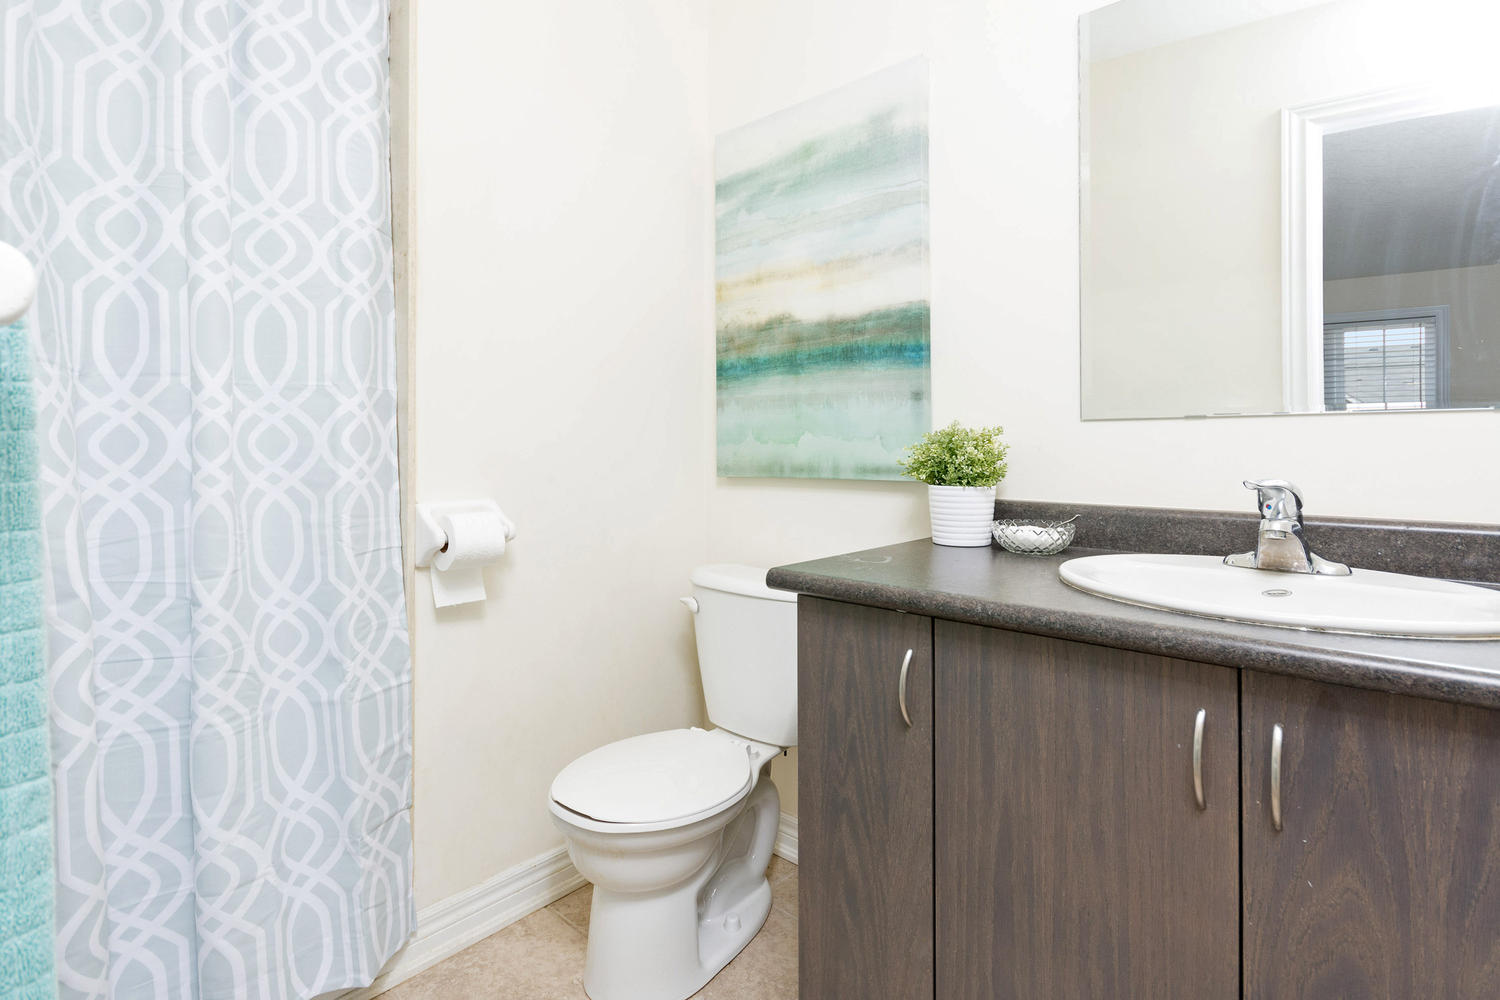 Staging A Bachelor Pad Town House To Sell